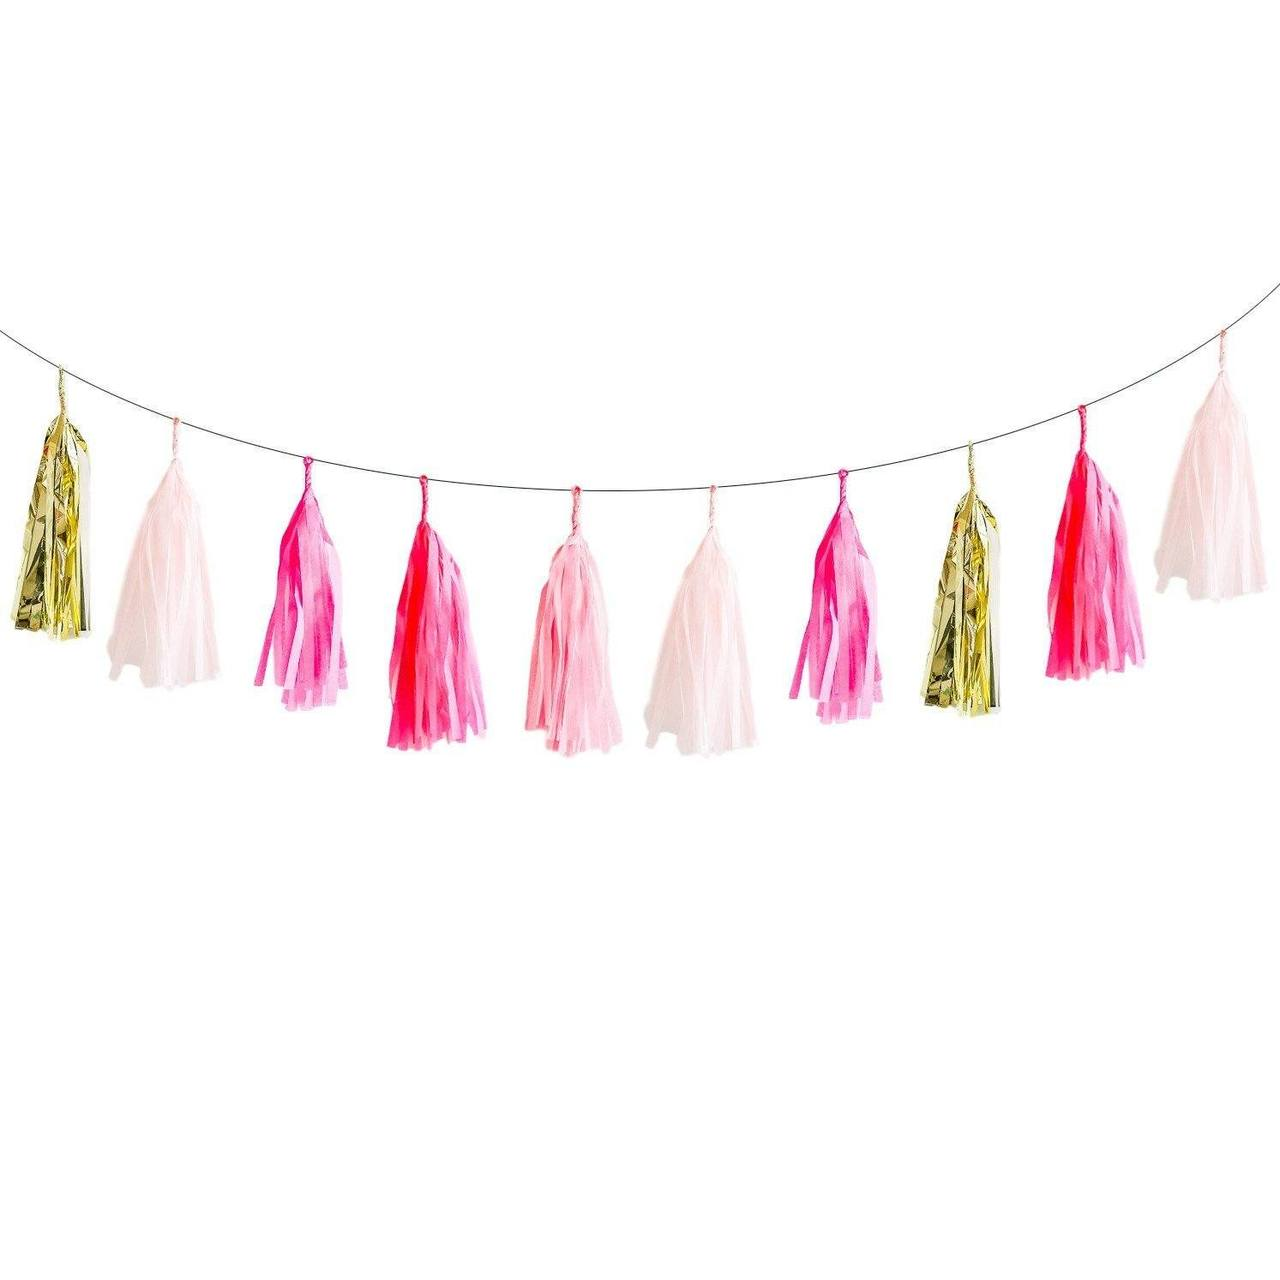 image Lovely lulu garland . Banners transparent tassel